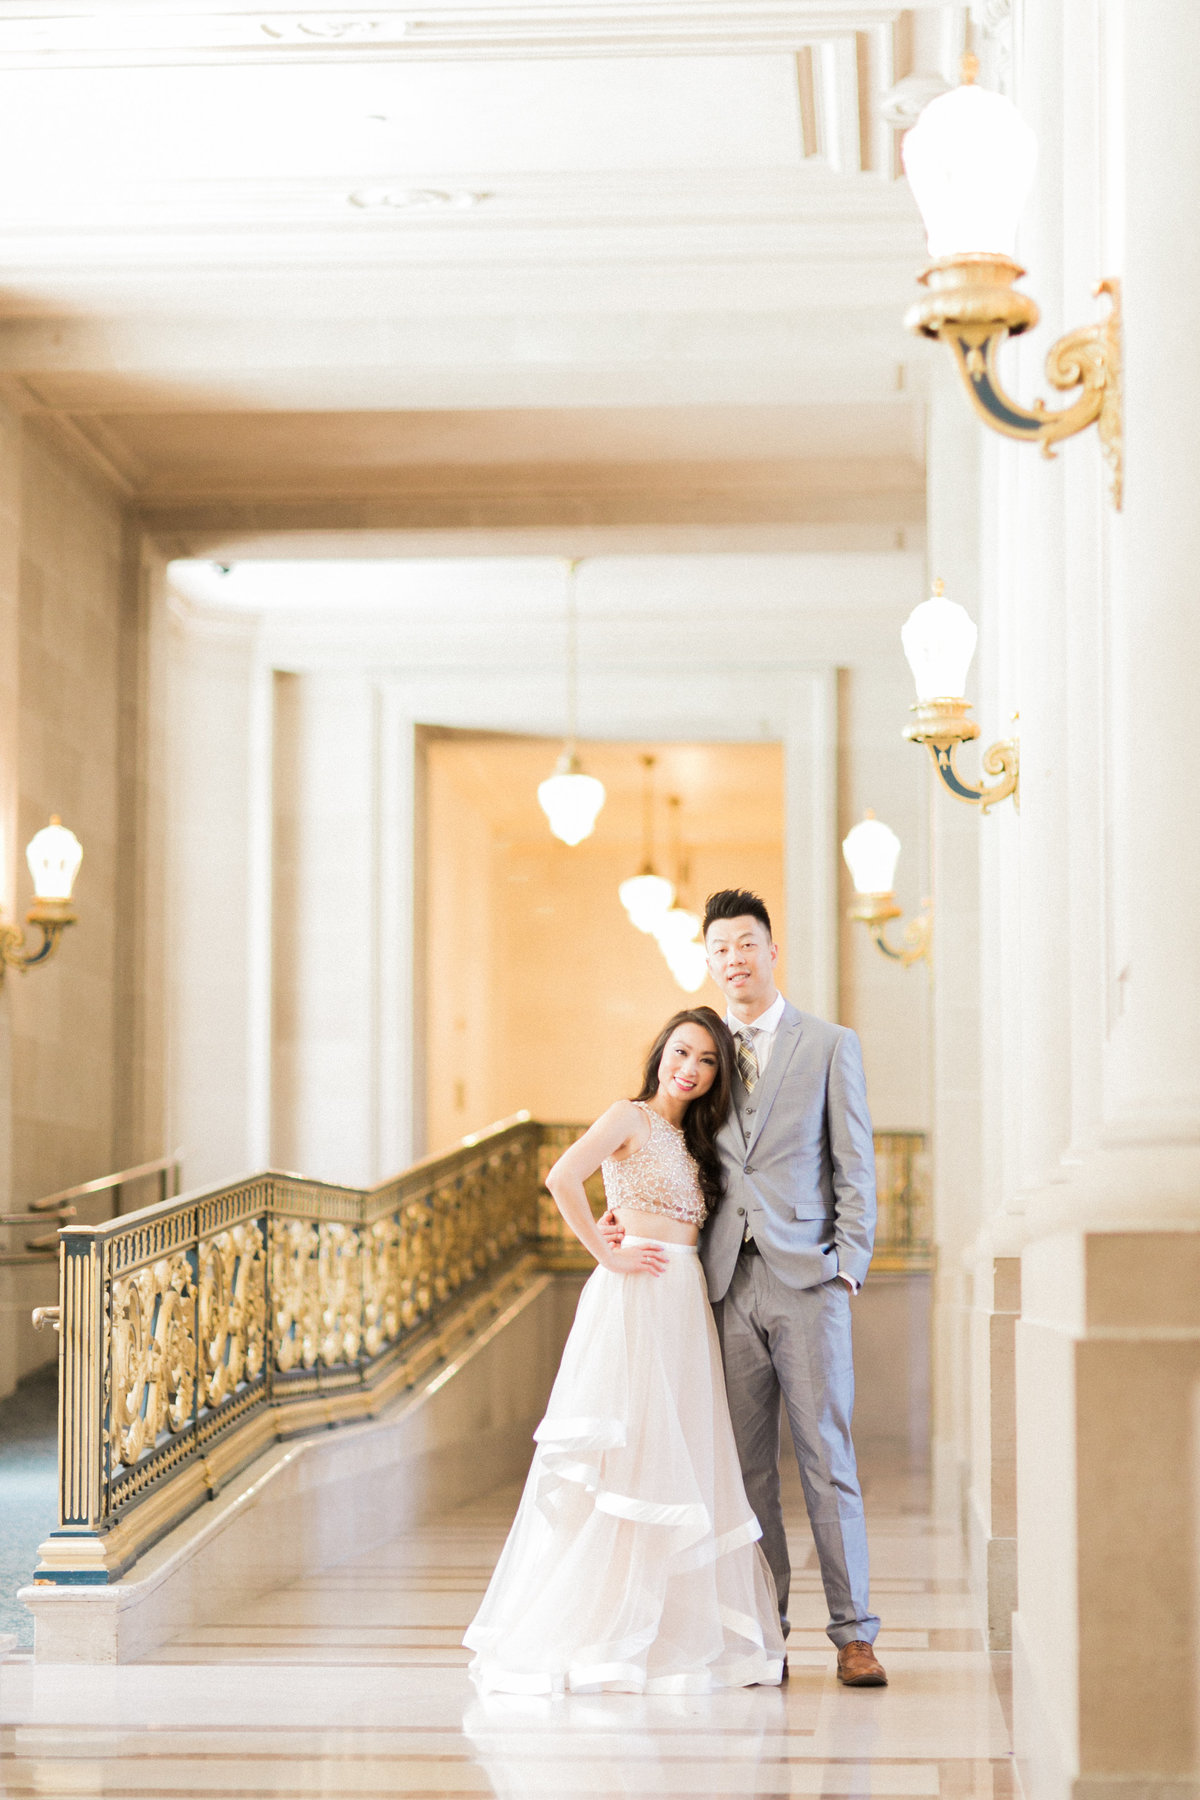 Engaged Couple San Francisco City Hall Photography